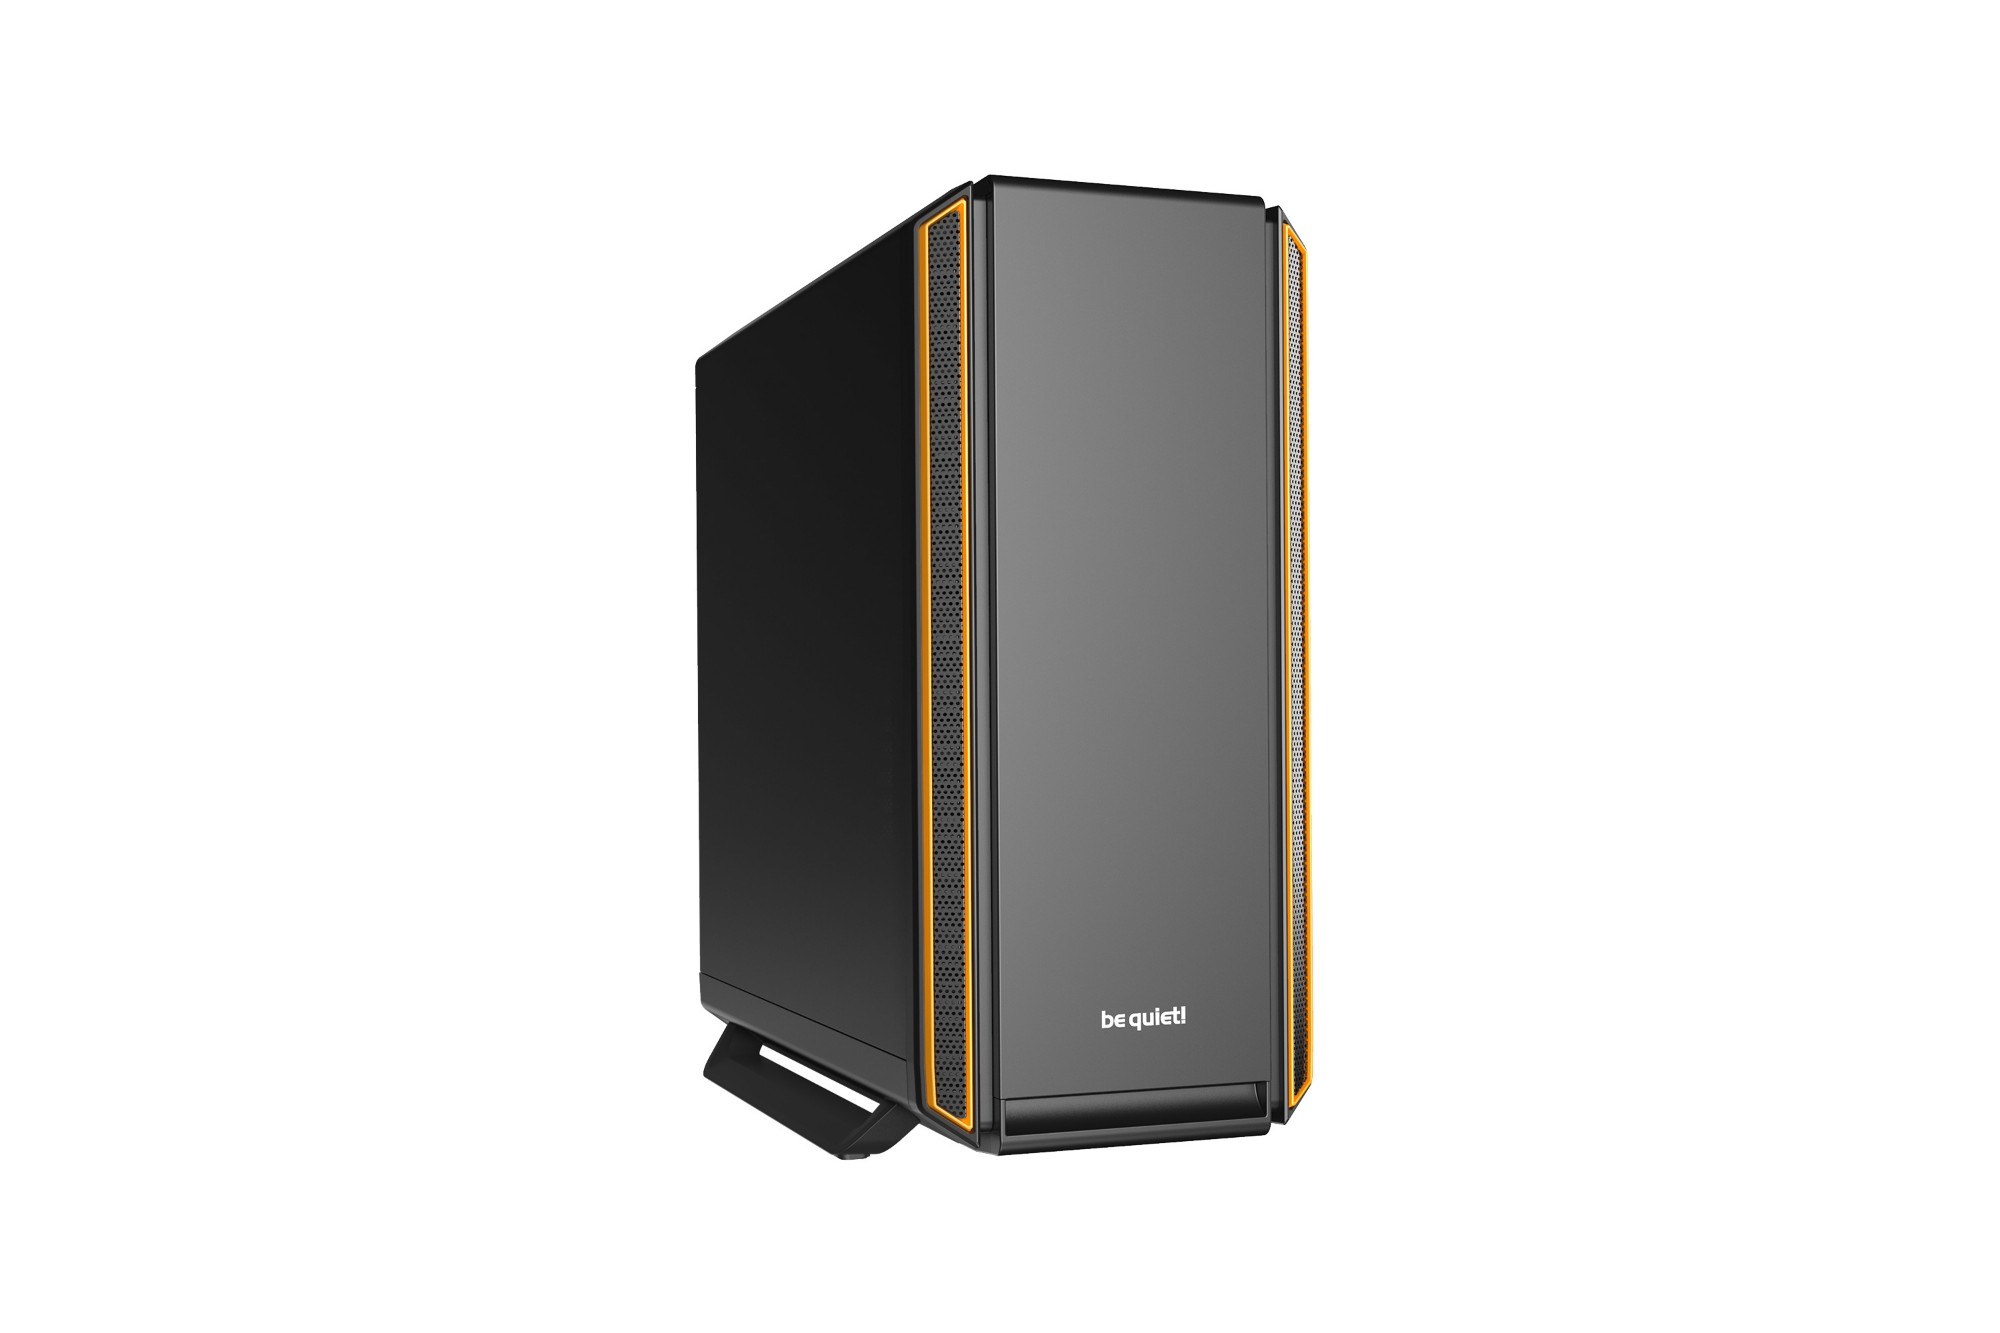 BE QUIET! BG028 SILENT BASE 801 COMPUTER CASE MIDI-TOWER BLACK, ORANGE